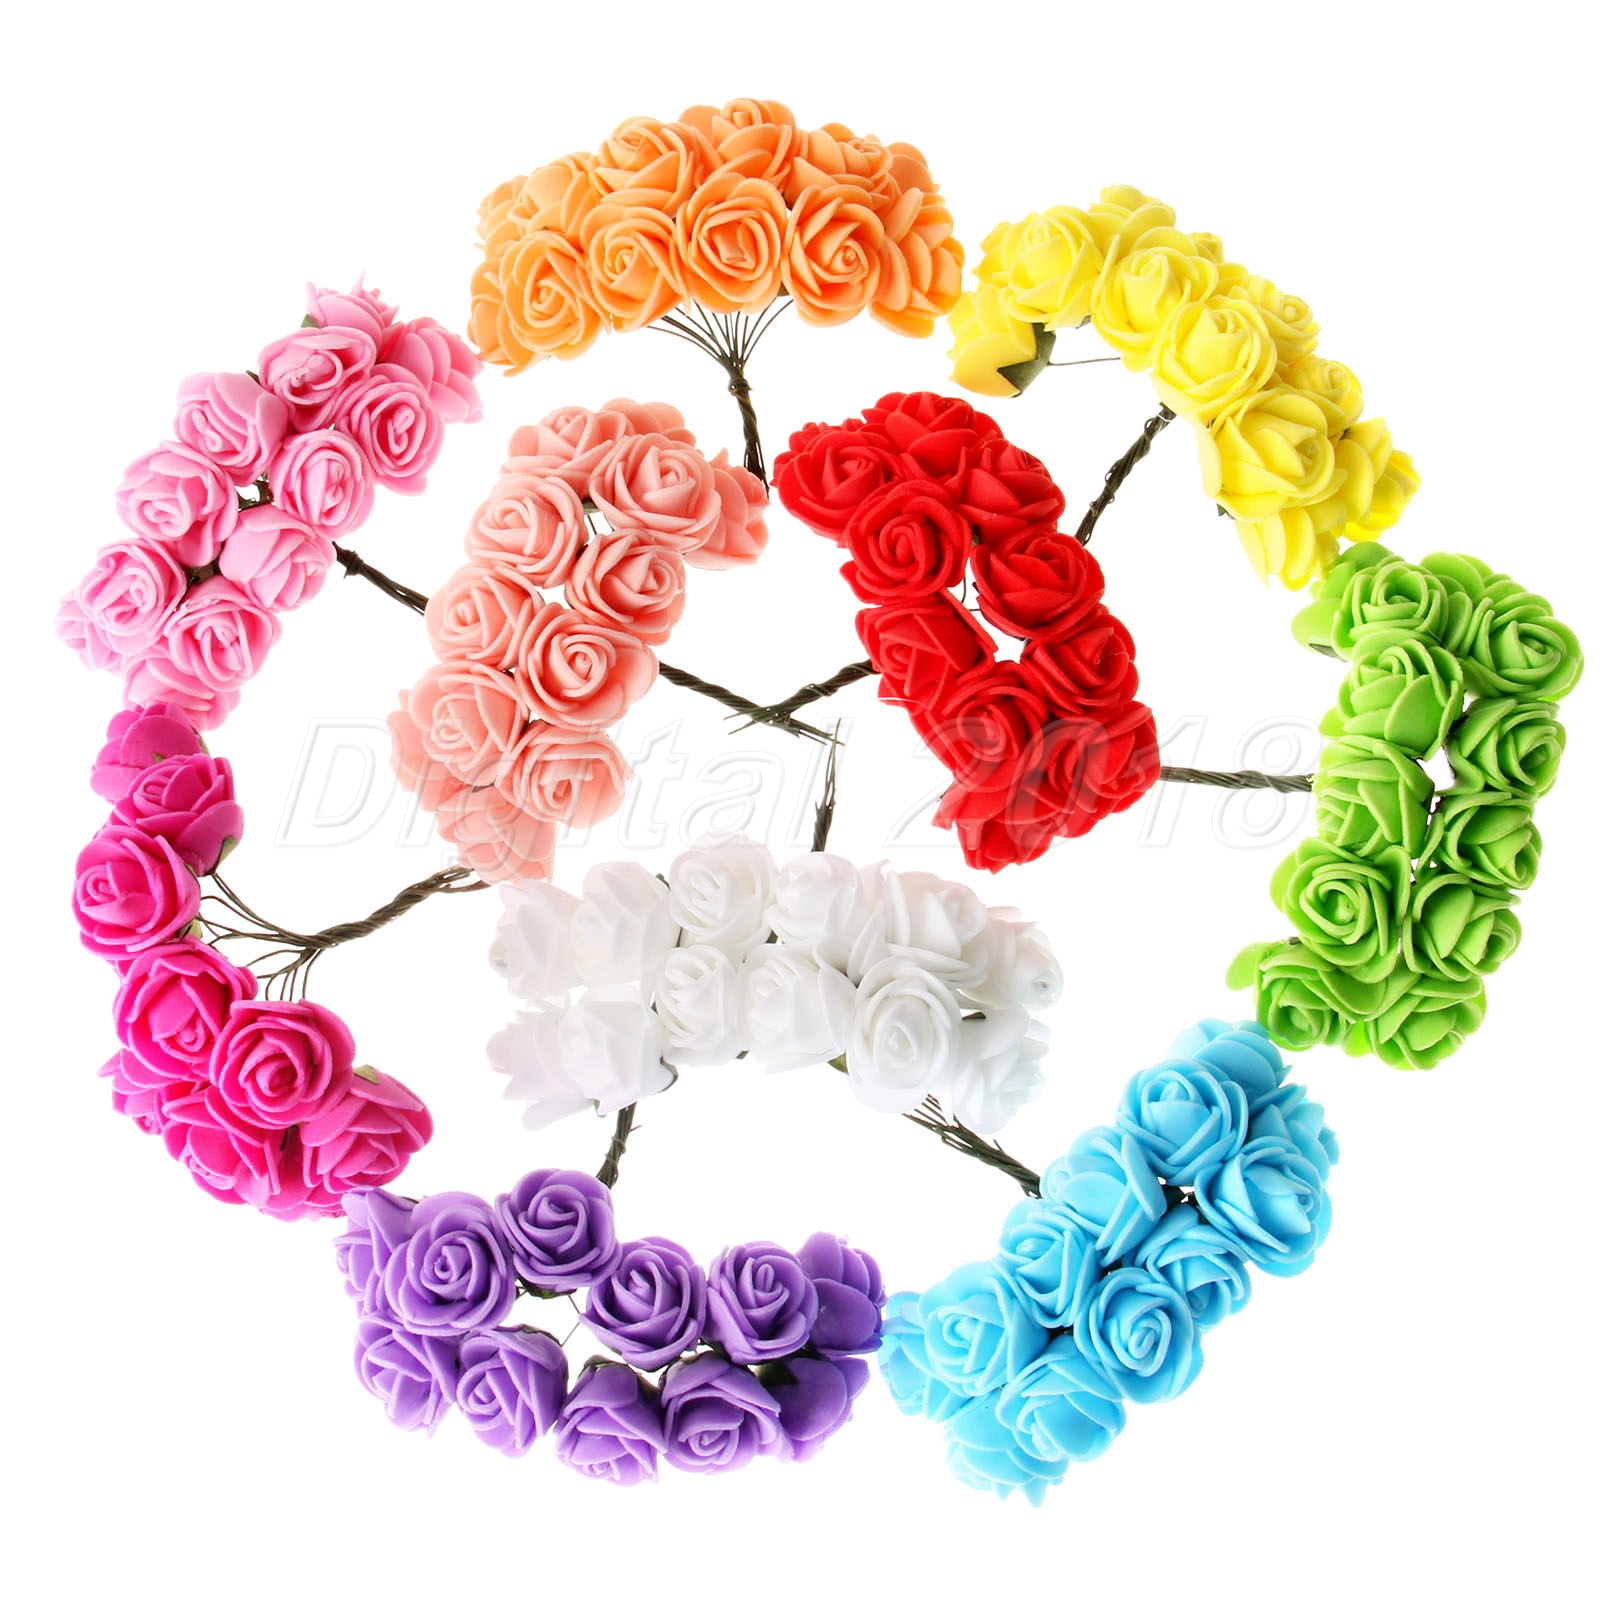 Mini artificial foam rose diy wreaths silk flowers multicolor image is loading mini artificial foam rose diy wreaths silk flowers izmirmasajfo Gallery